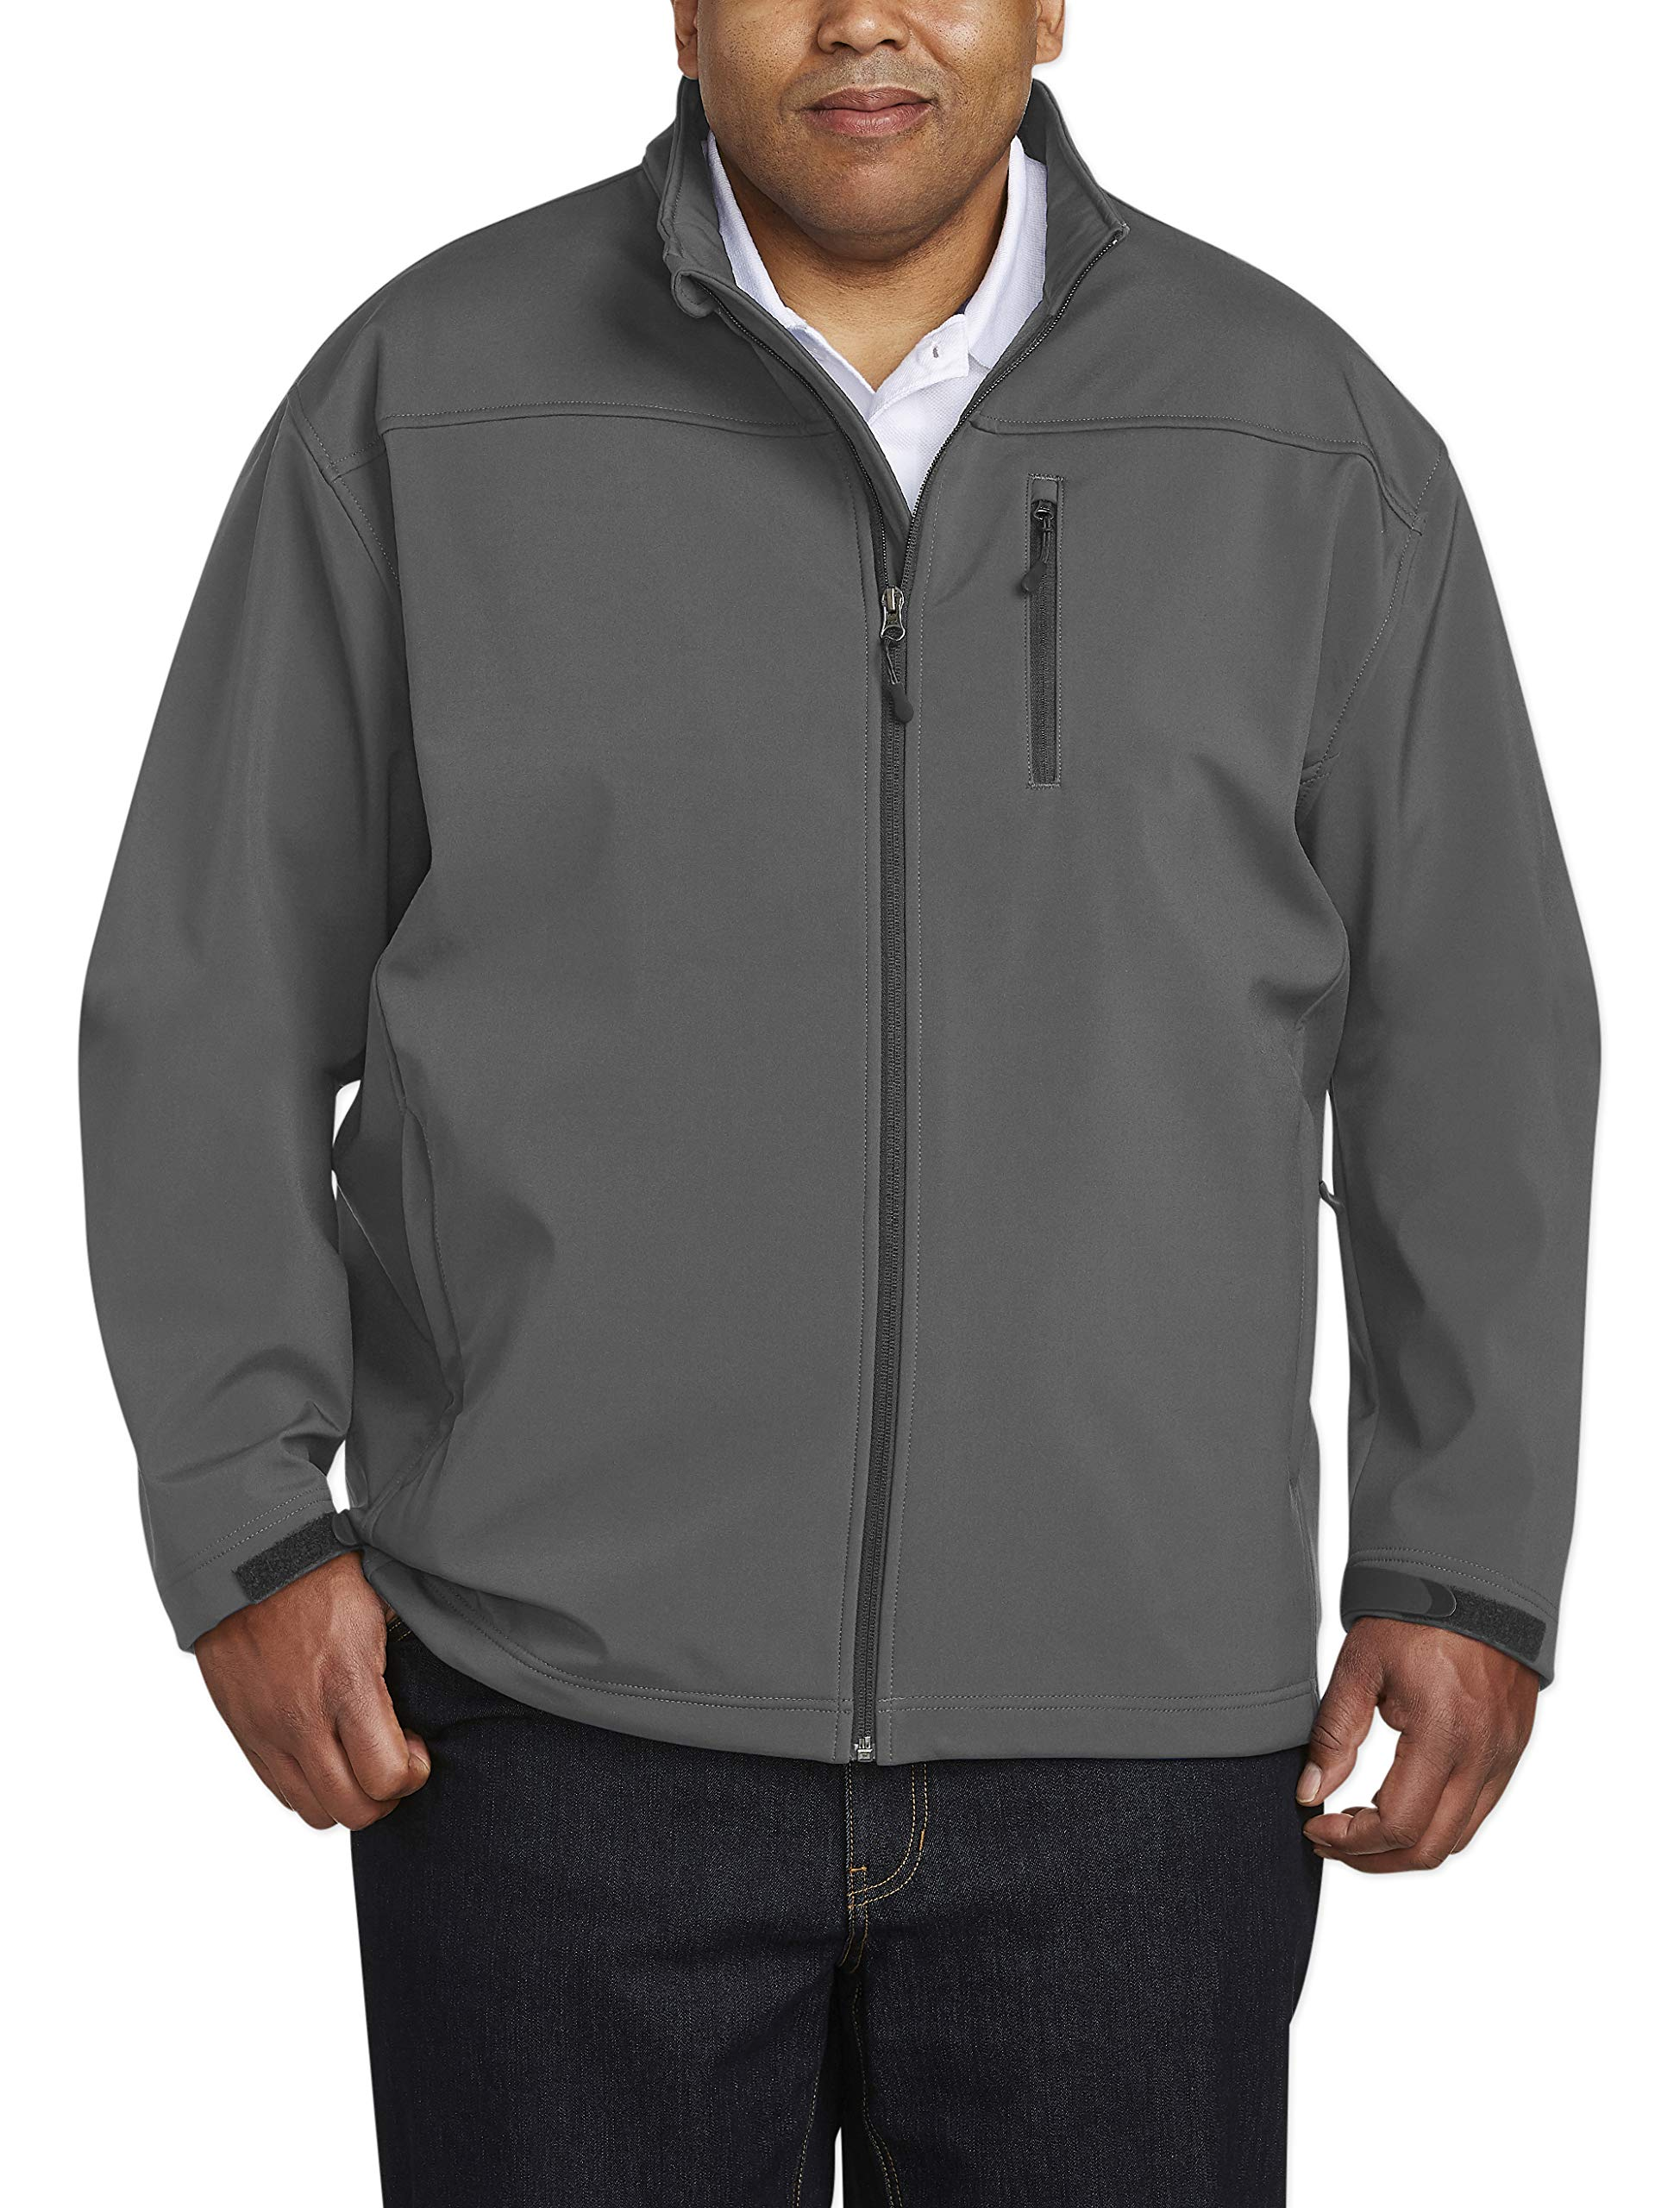 Amazon Essentials Men's Big & Tall Water-Resistant Softshell Jacket fit by DXL, Gray, 5X Tall by Amazon Essentials